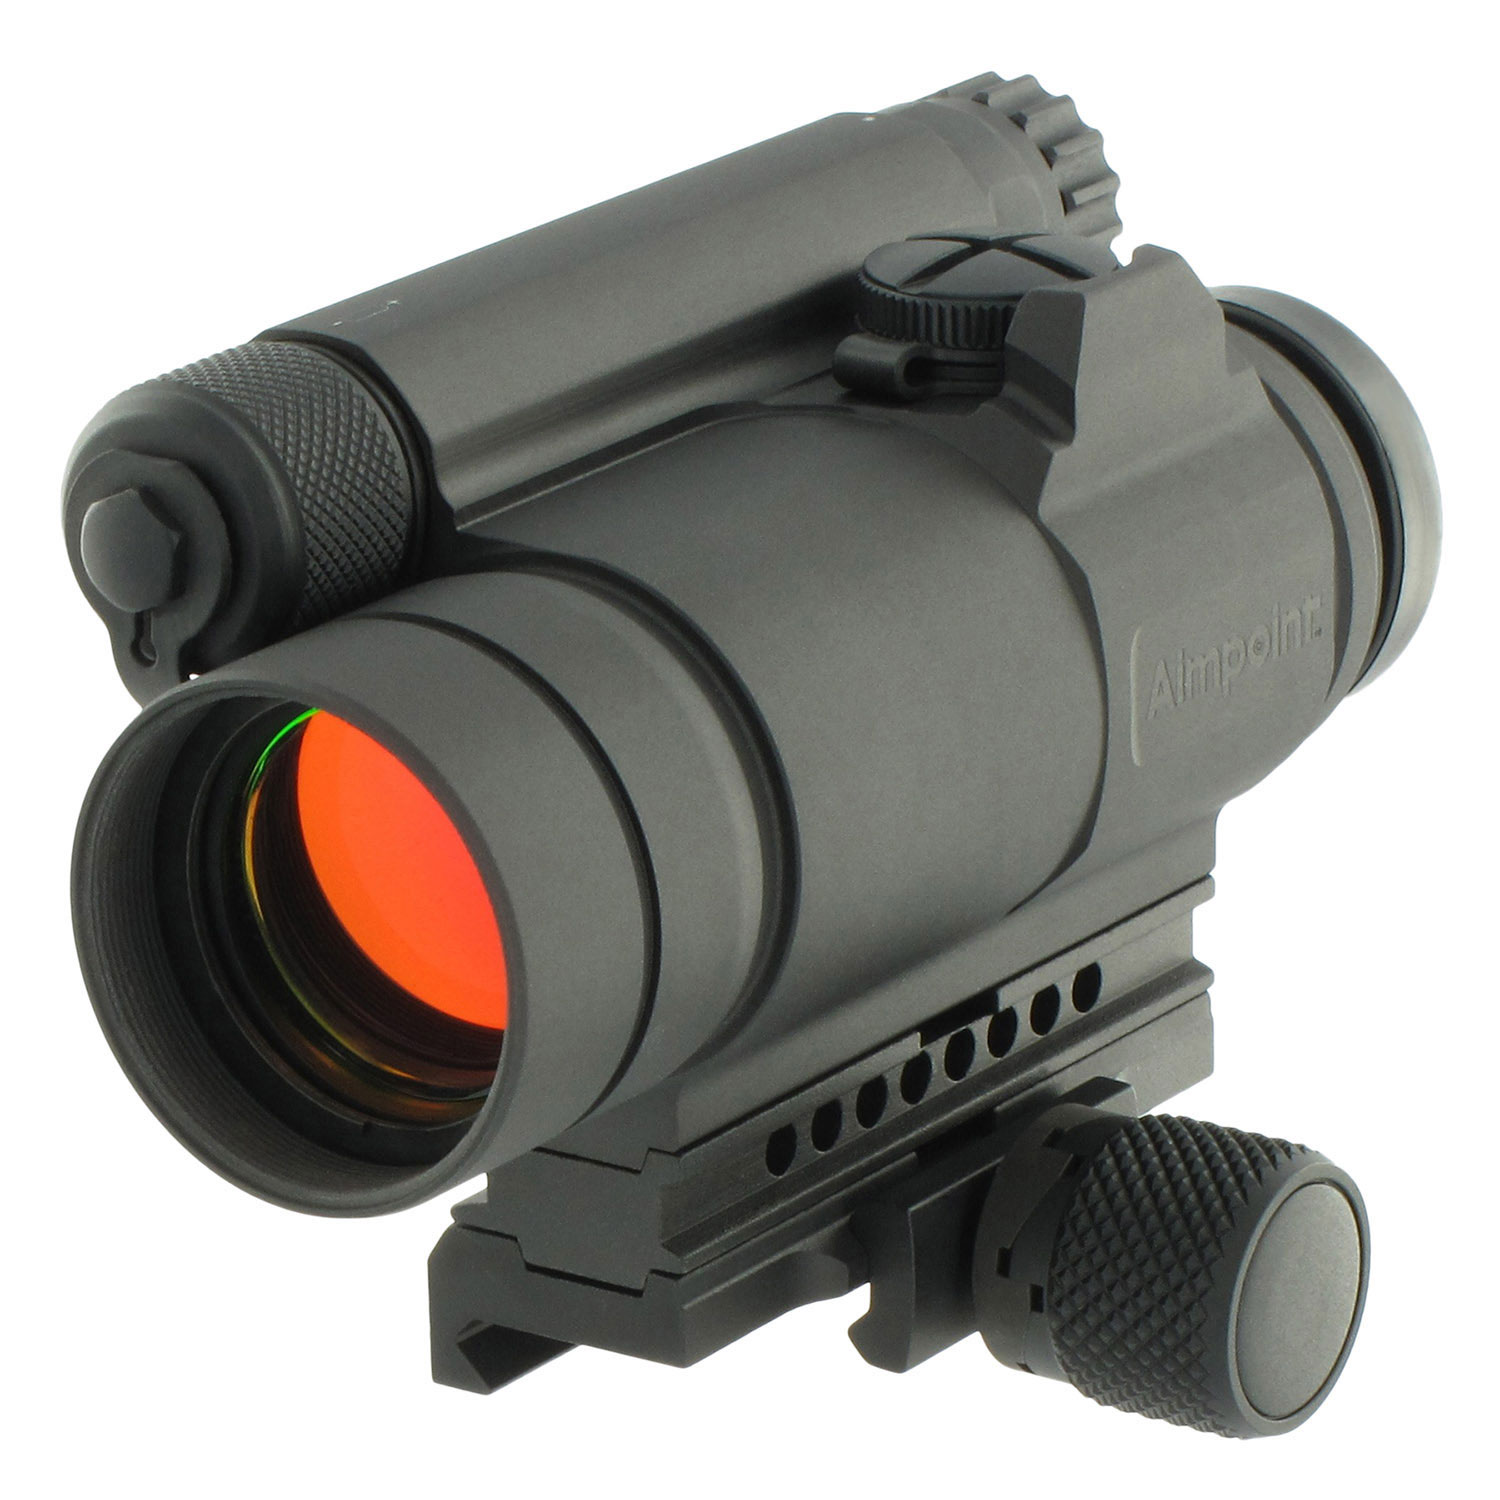 Aimpoint M4s 2 MOA Red Dot